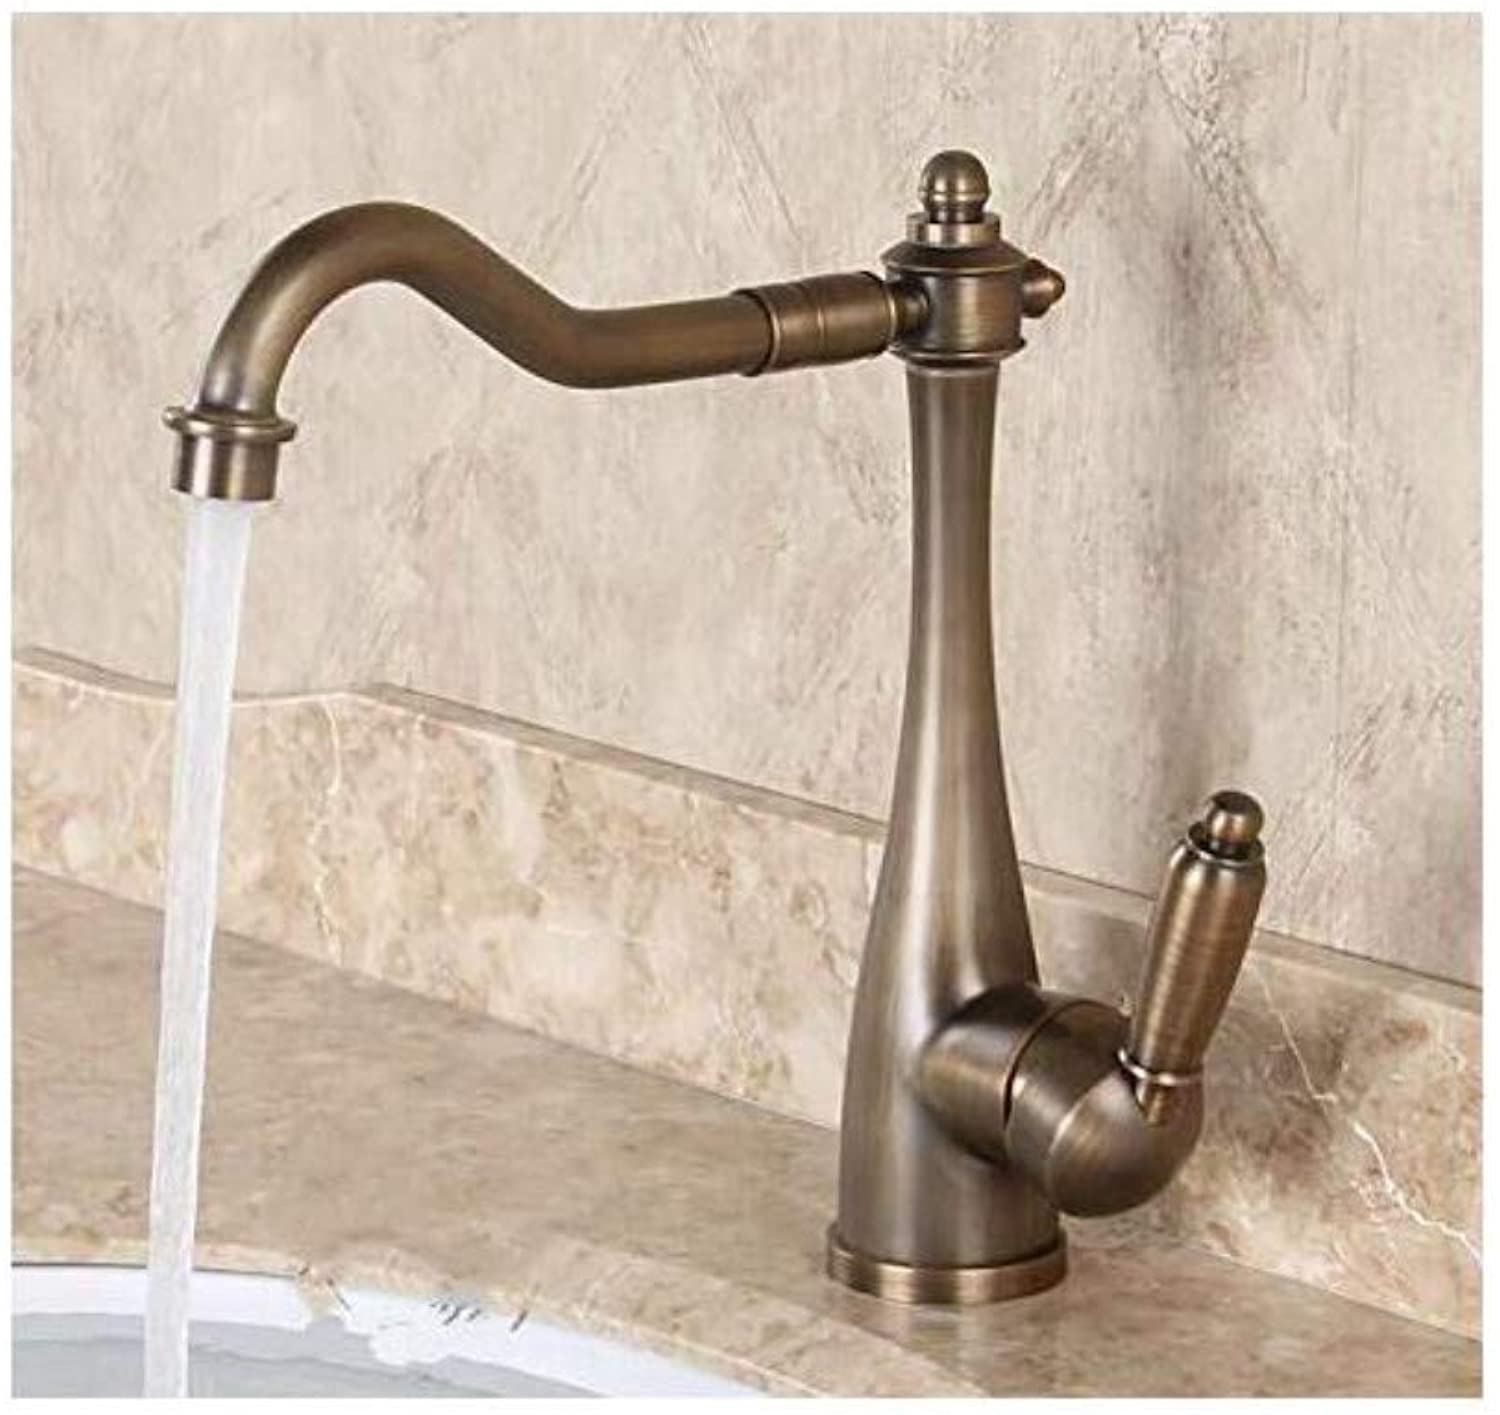 Modern Plated Kitchen Bathroom Faucet Faucet Copper Hot and Cold Ancient Antique Single Handle Single Hole Wash Faucet